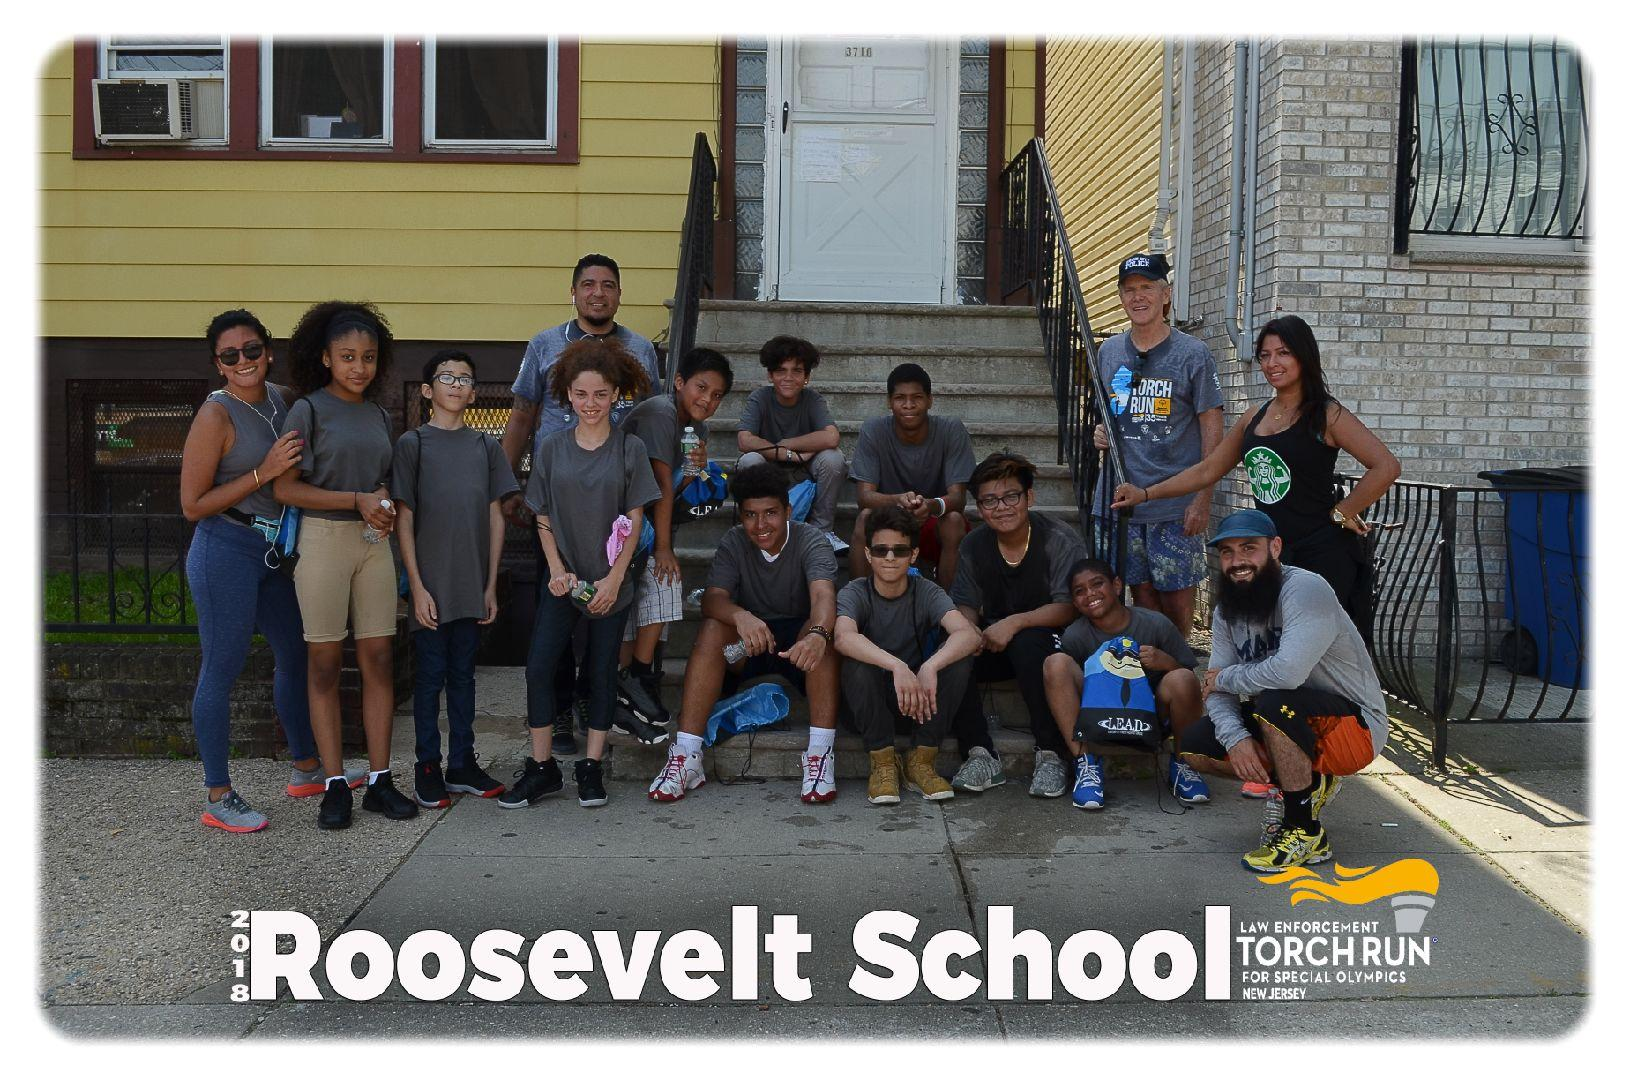 Roosevelt School torch run runners